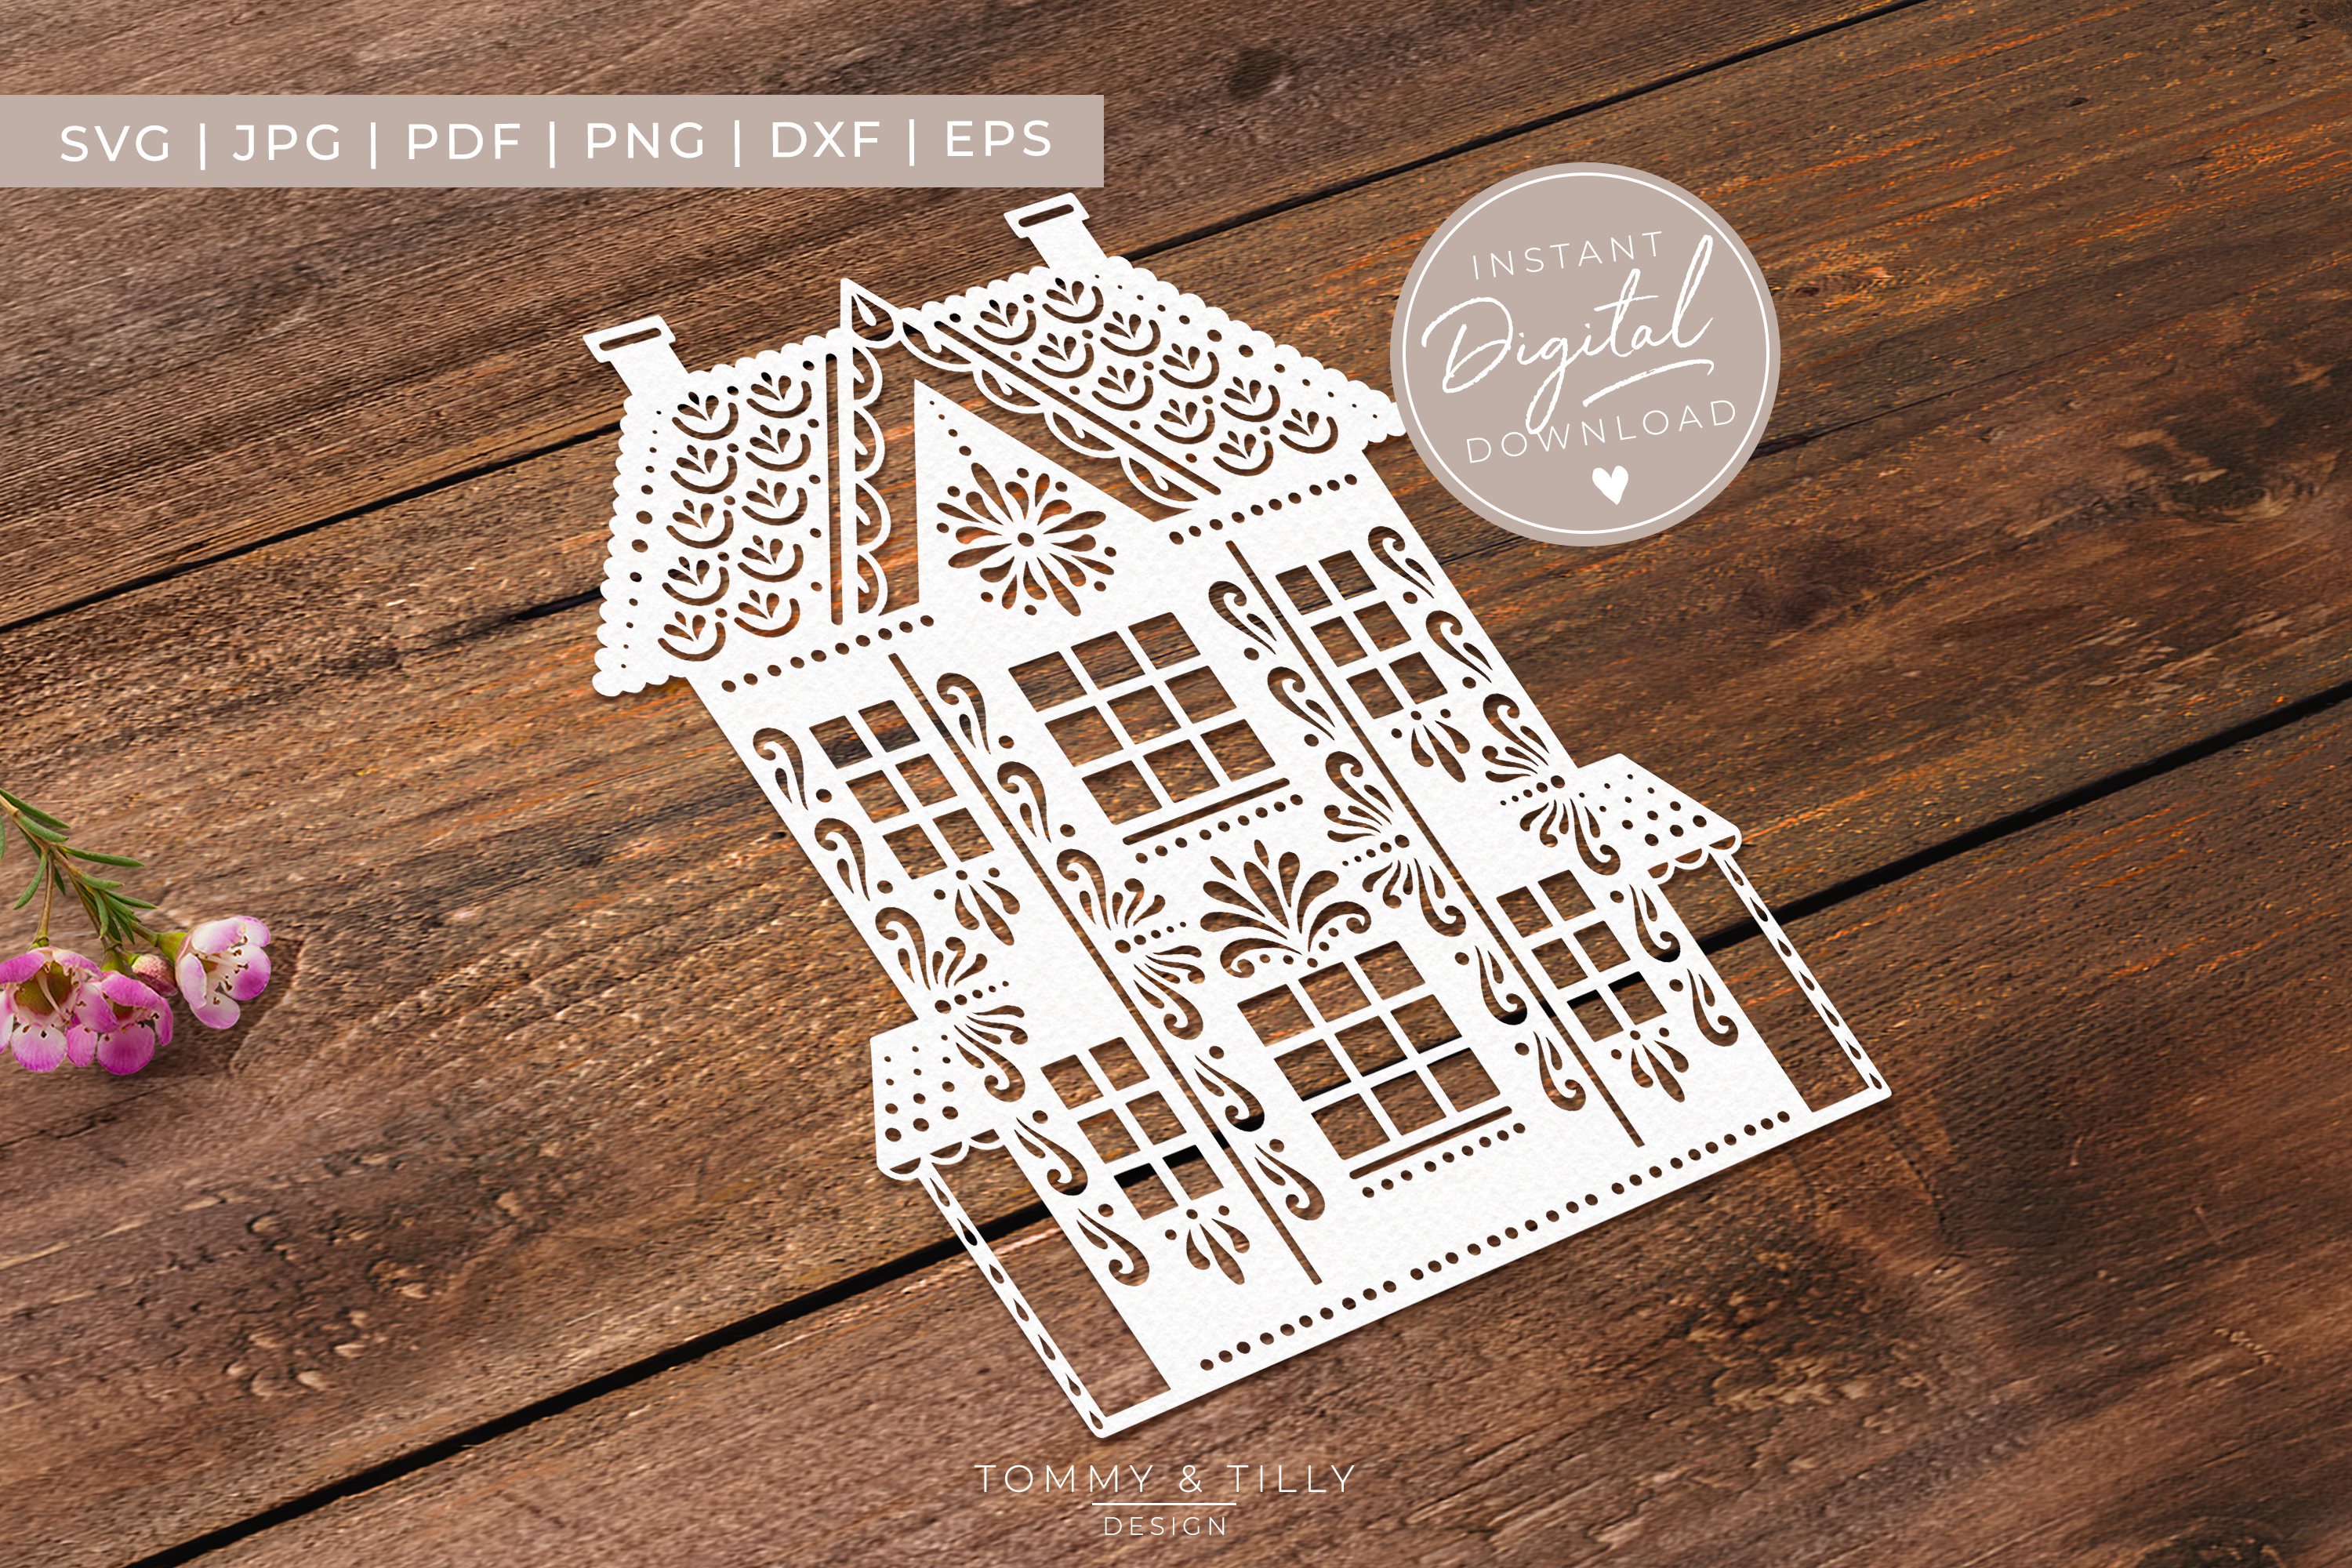 Intricate House No.1 - SVG EPS DXF PNG PDF JPG Cut File example image 3